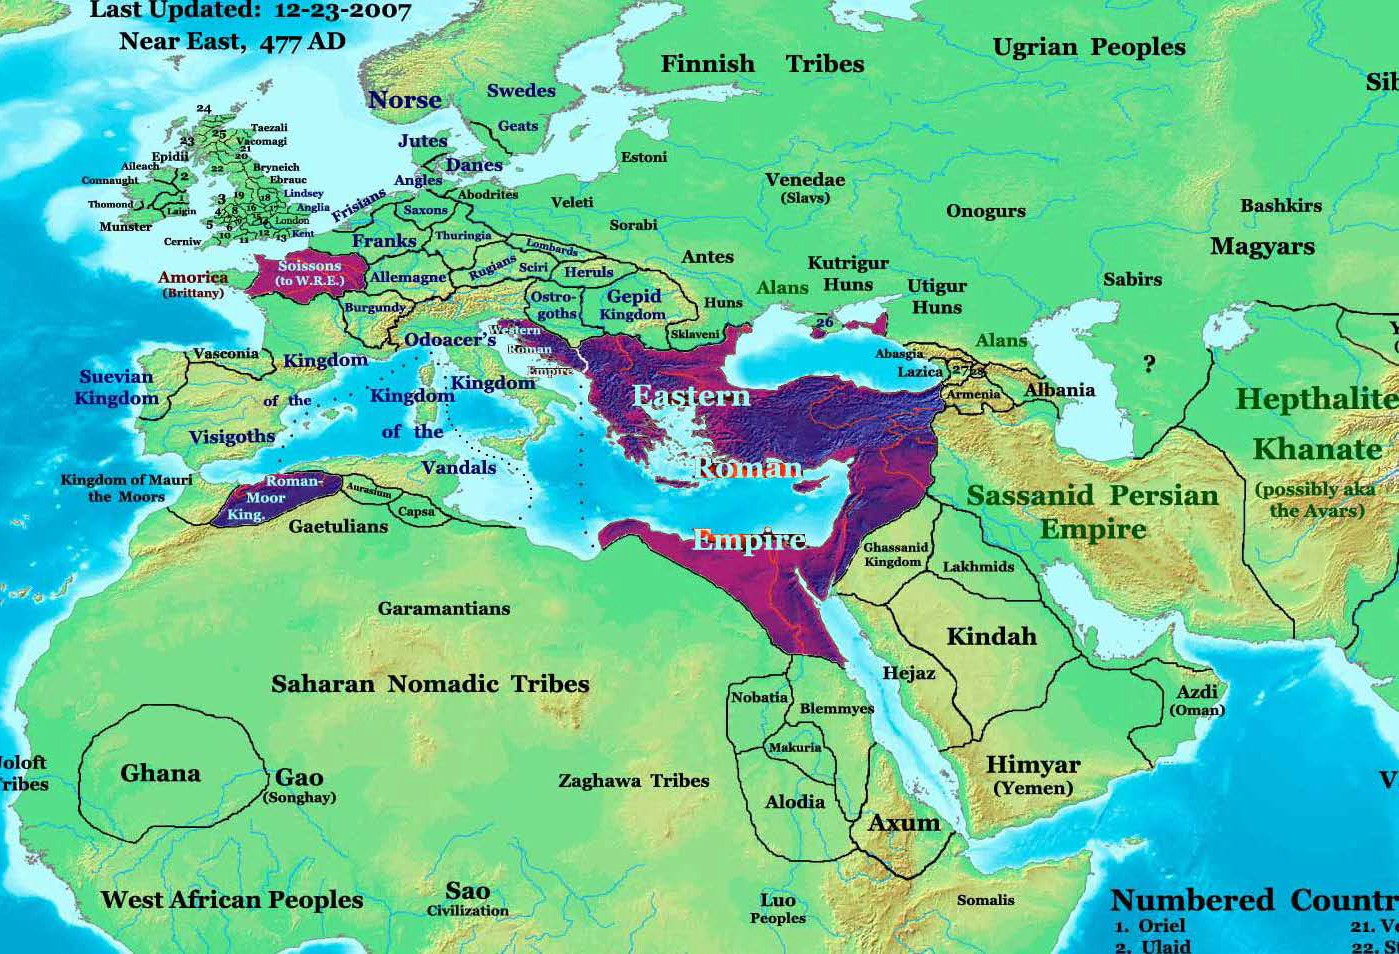 Map of the Roman Empire in 477 CE